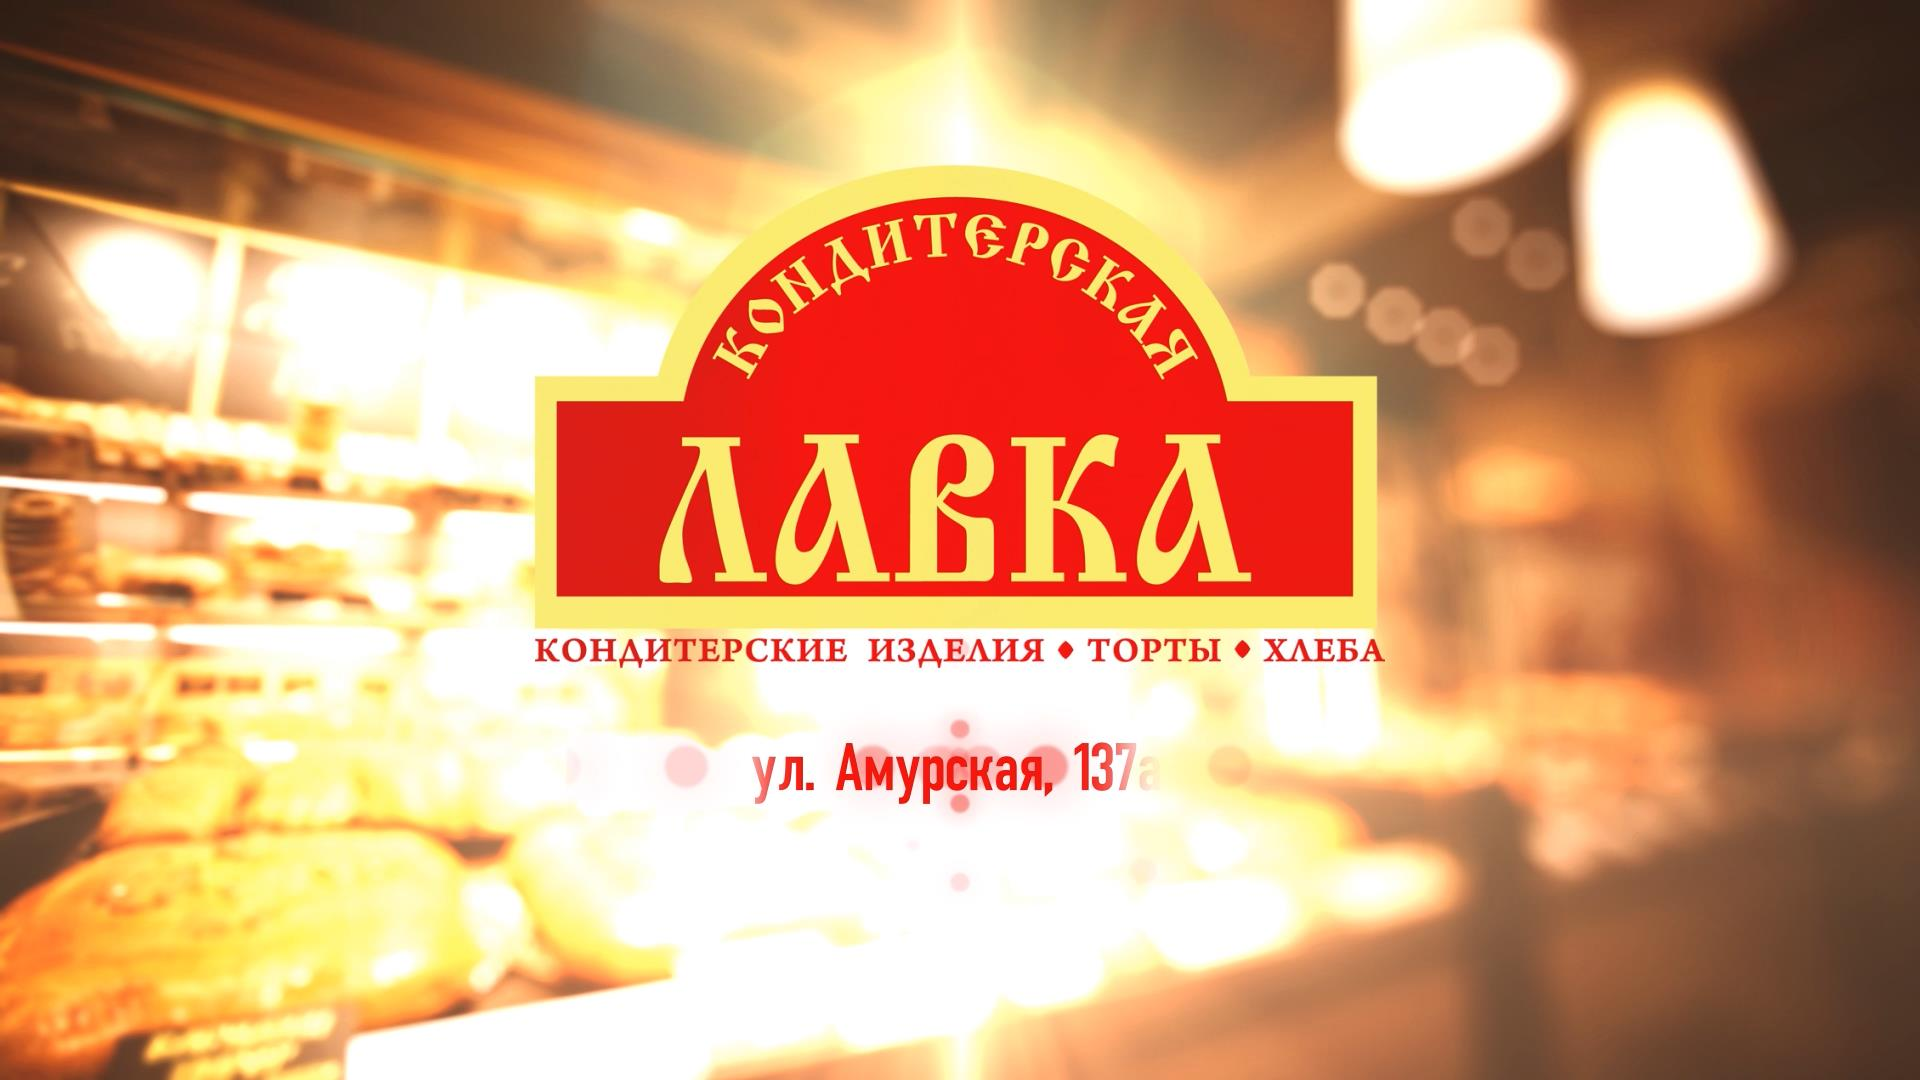 Konditerskaya_Lavka_Elite_Cafe.mp4_snapshot_00.32_[2015.05.31_16.17.20].jpg